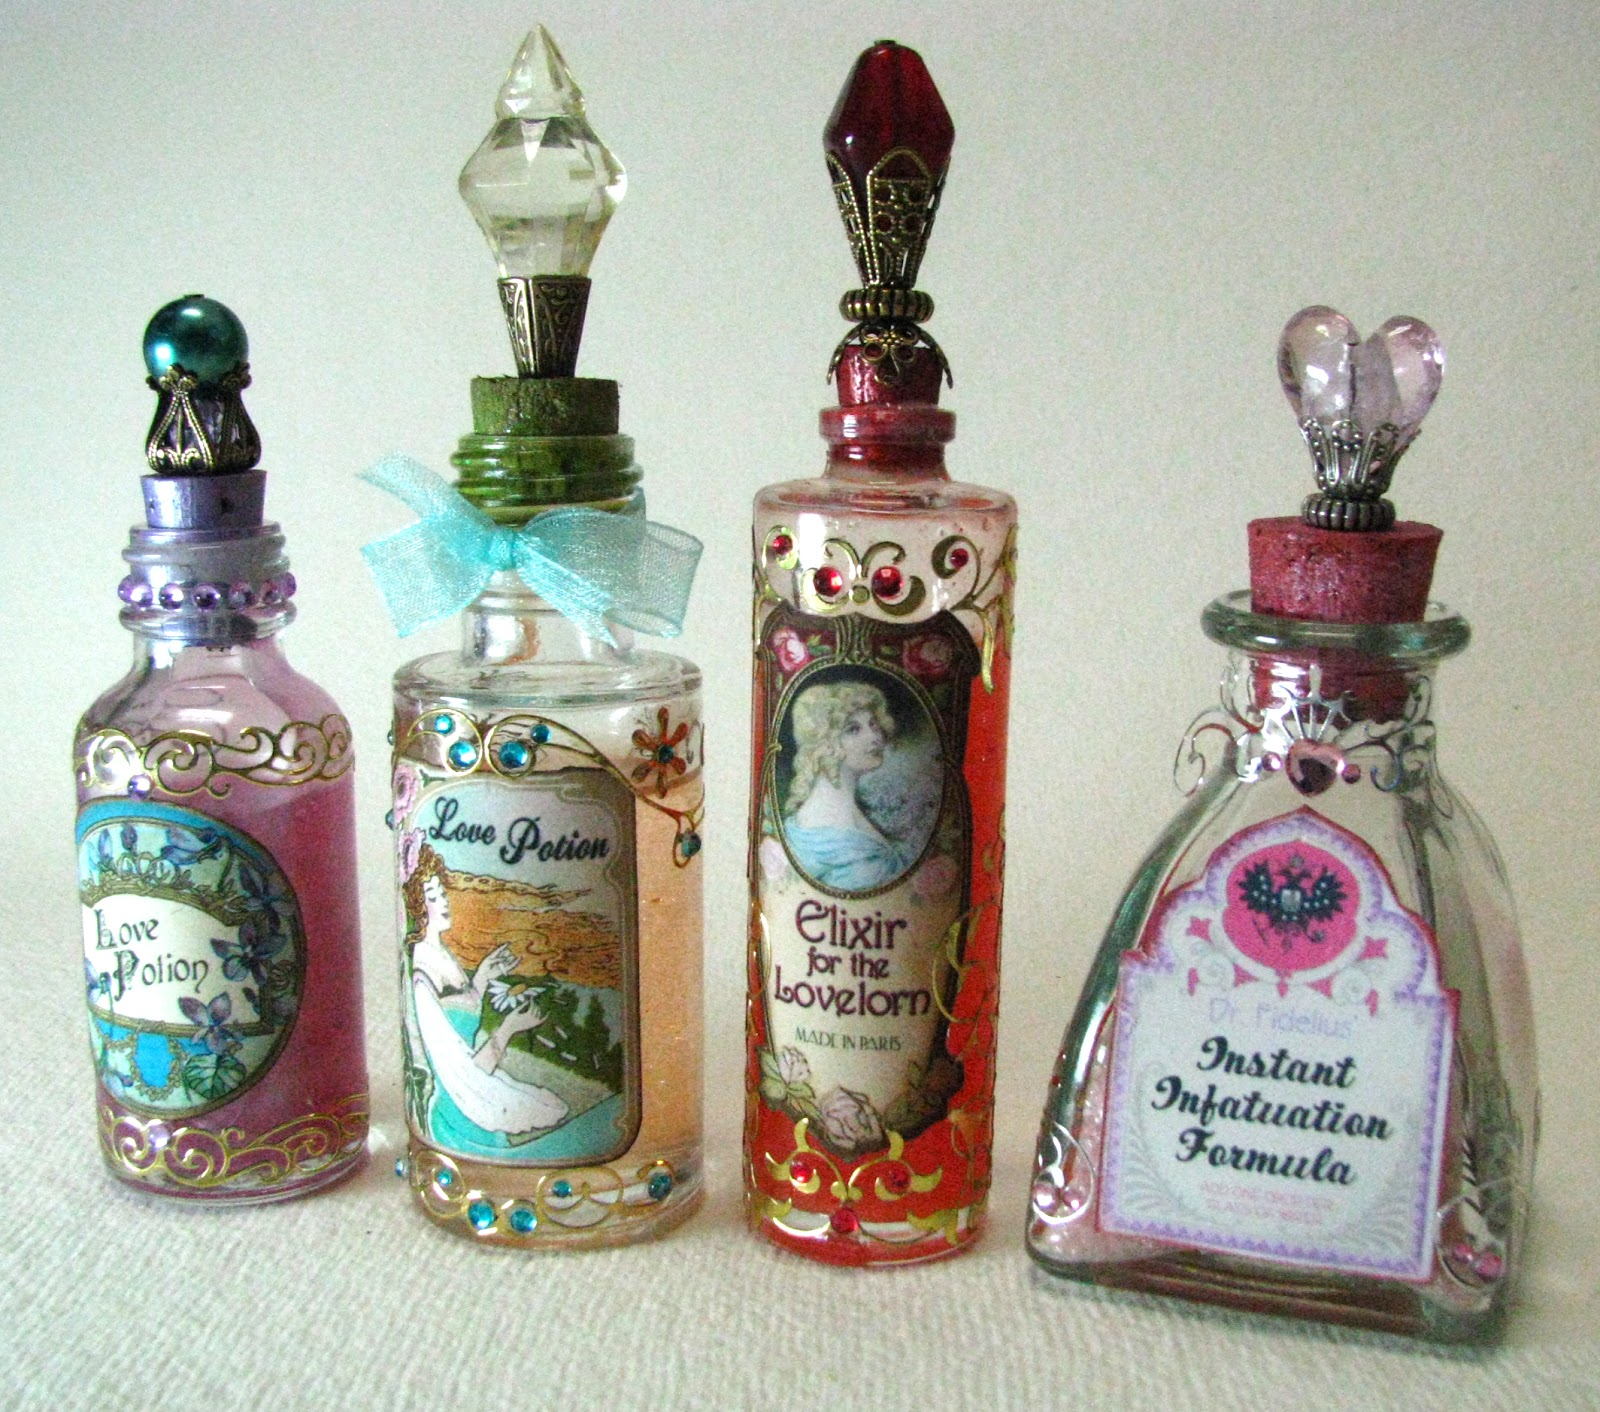 Are love potions for real? | Bottle, Altered bottles and Craft